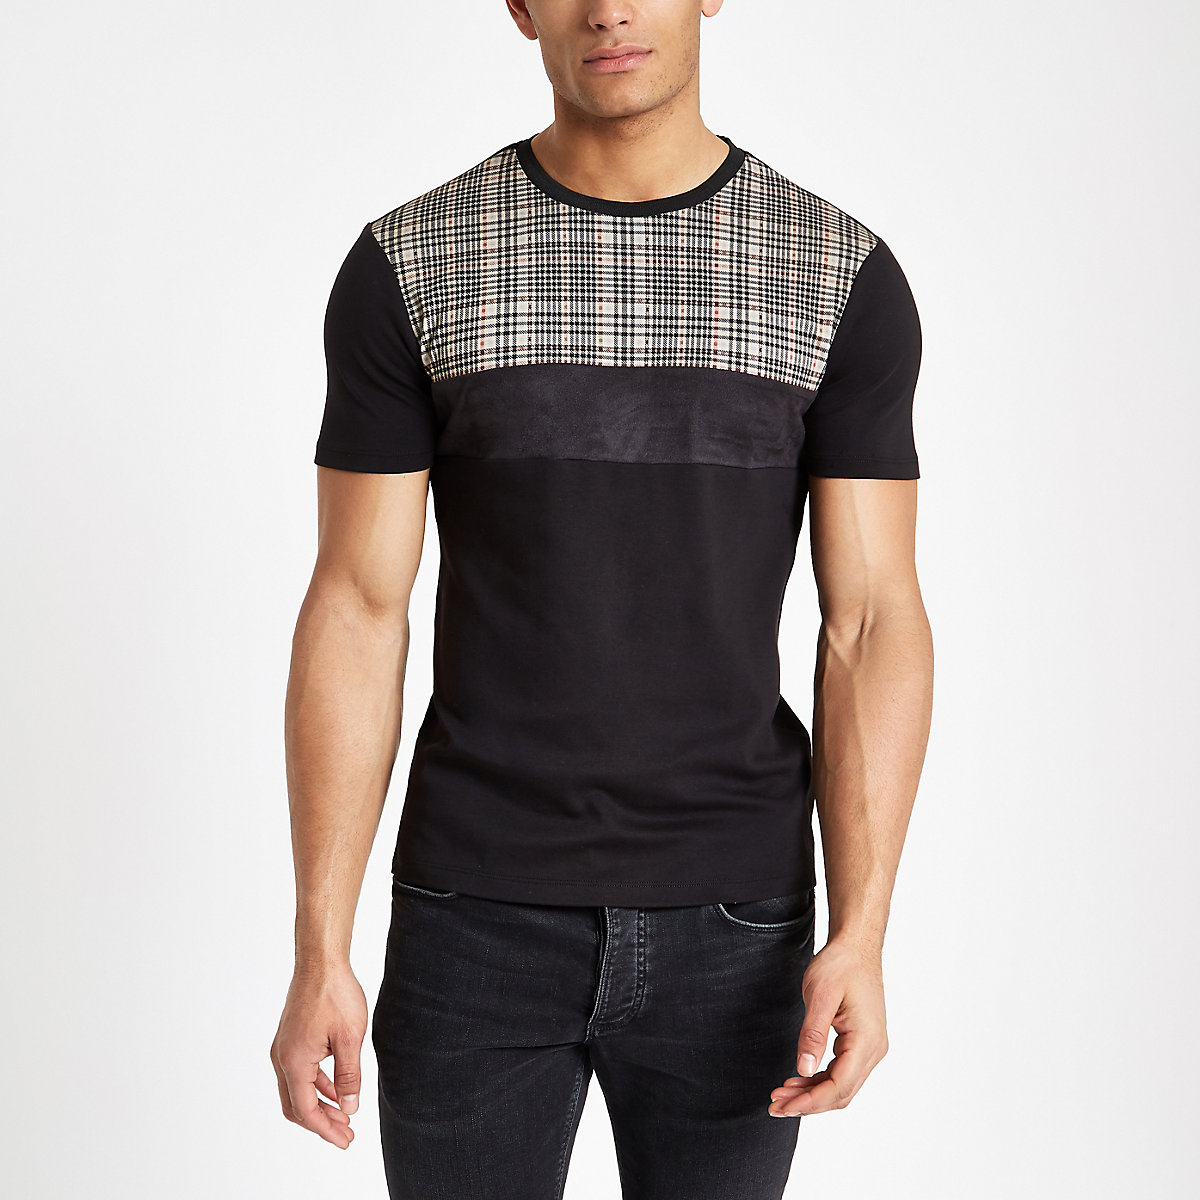 Black check muscle fit T-shirt